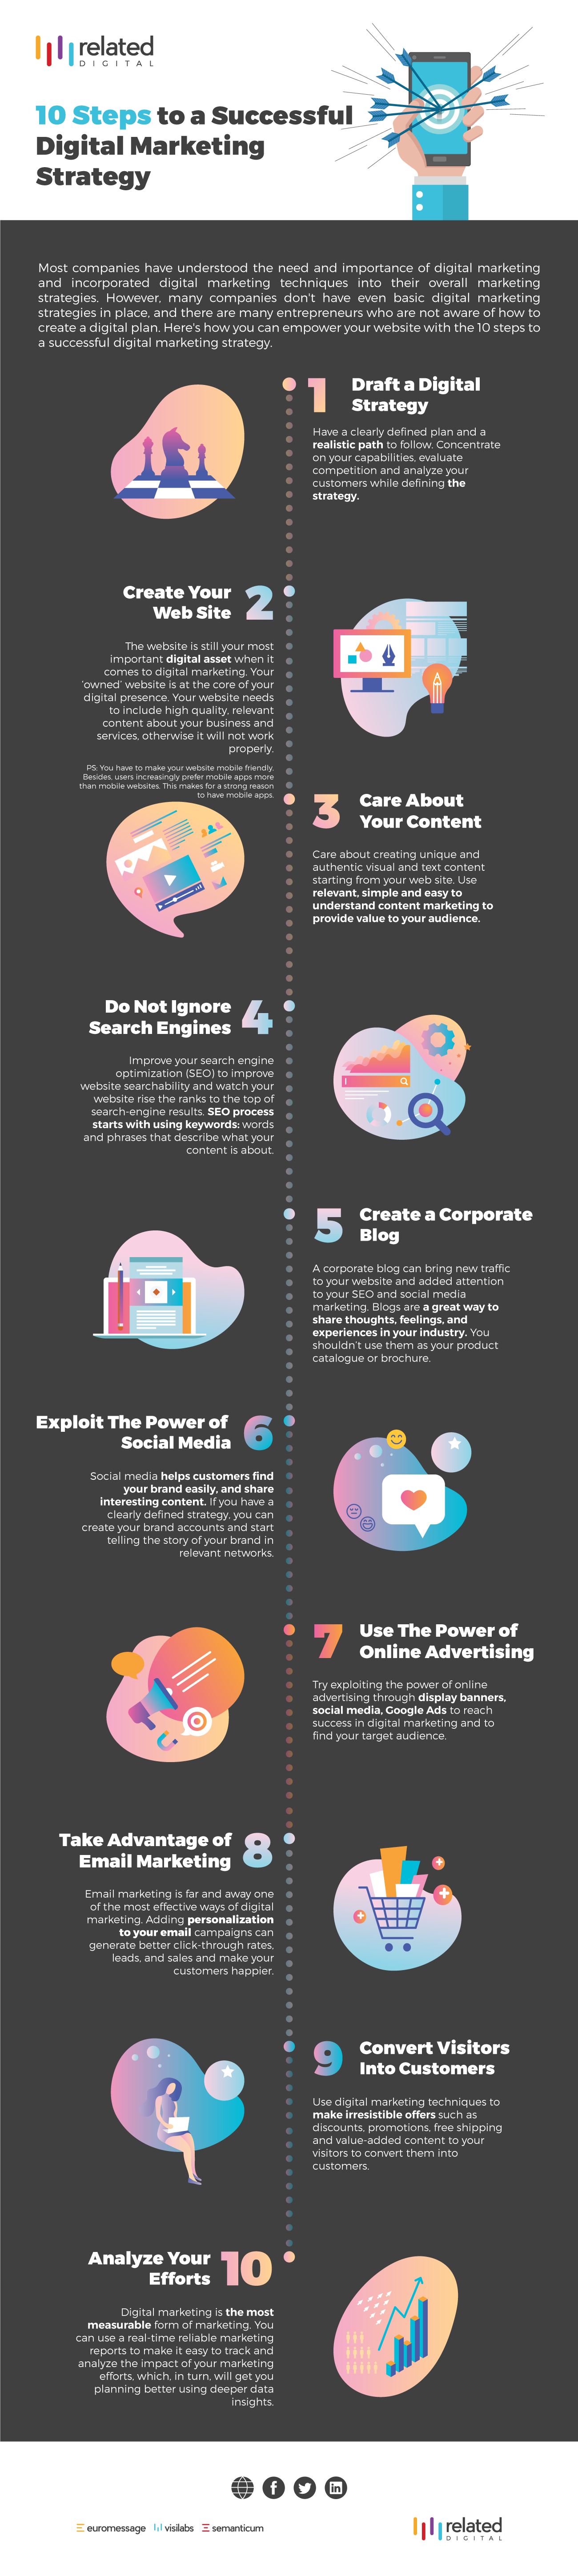 10-steps-to-successful-digital-marketing-strategy